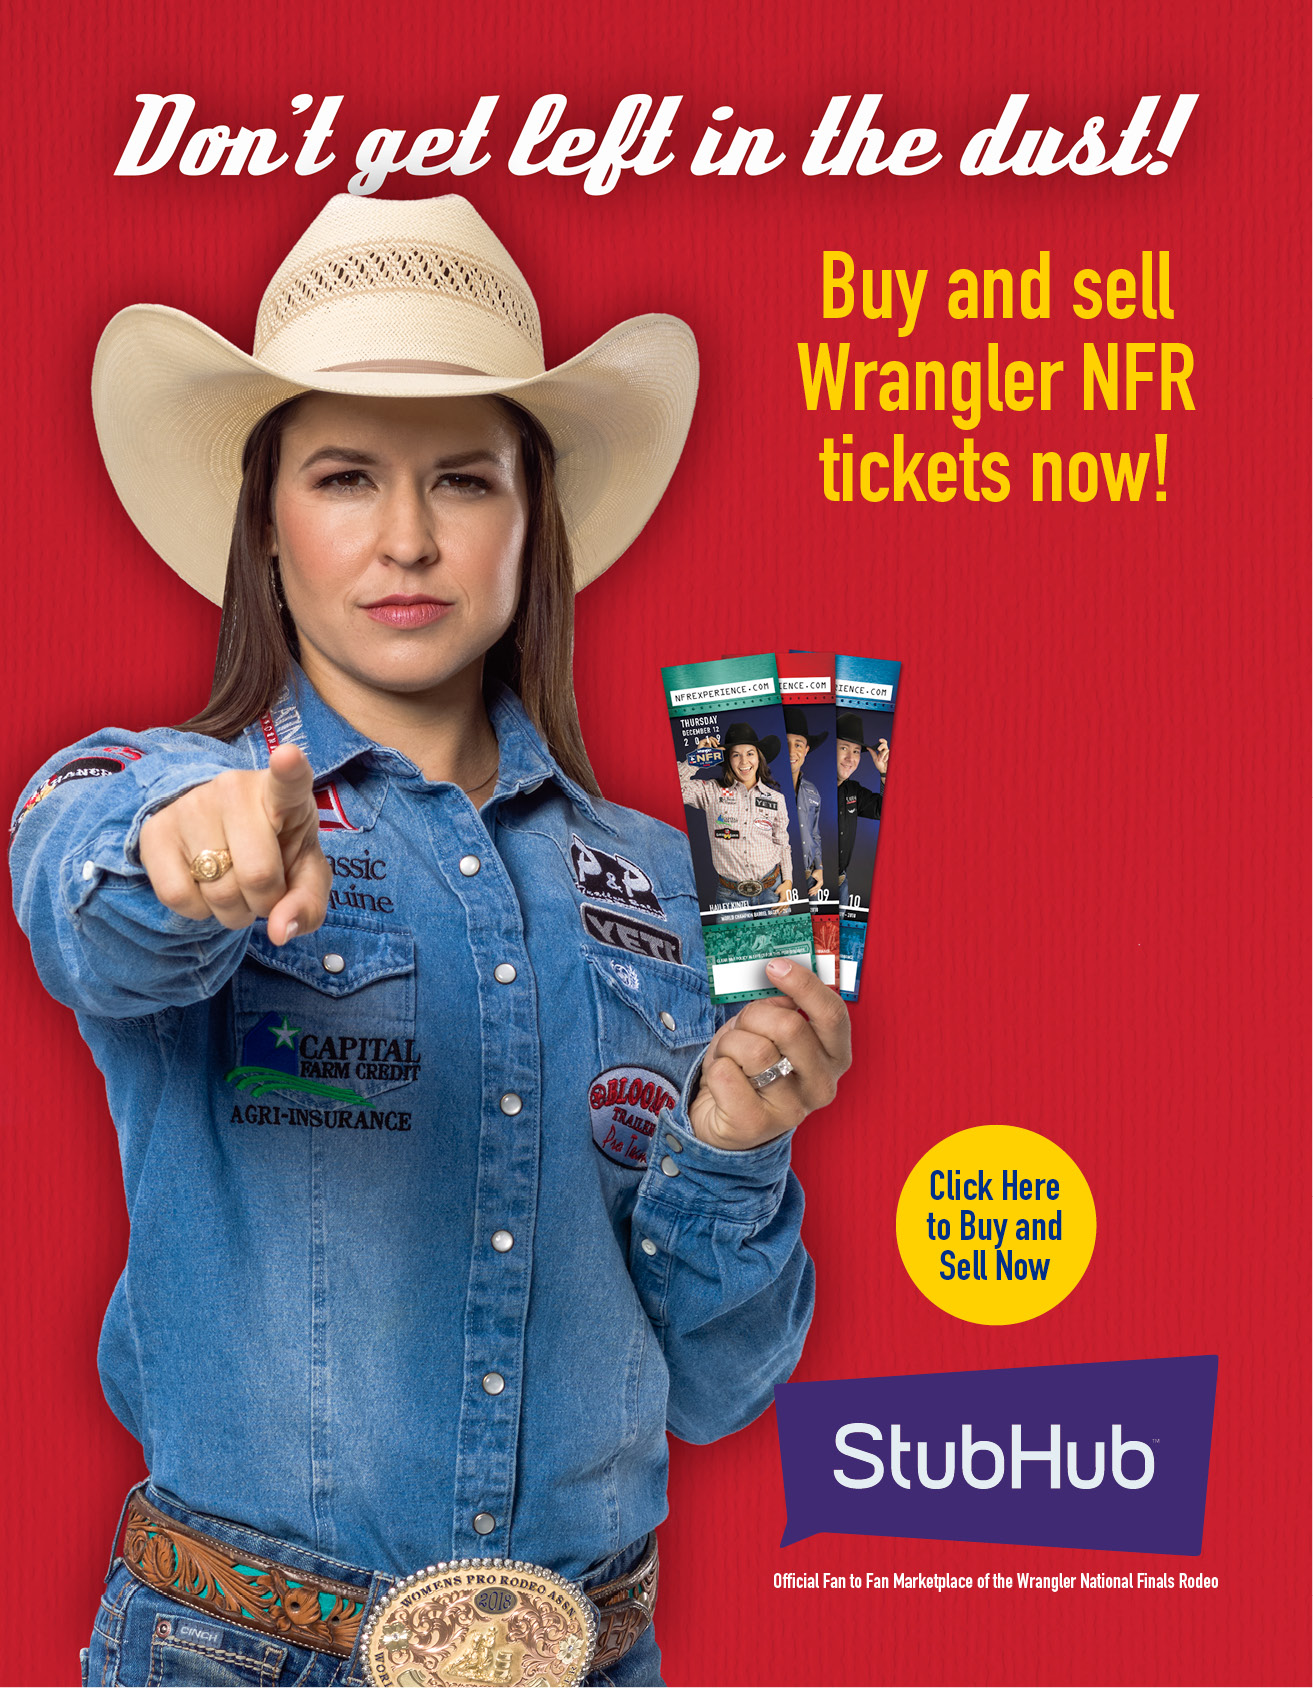 image regarding Stubhub Printable Tickets called StubHub - Order and Market Previously! NFR Knowledge